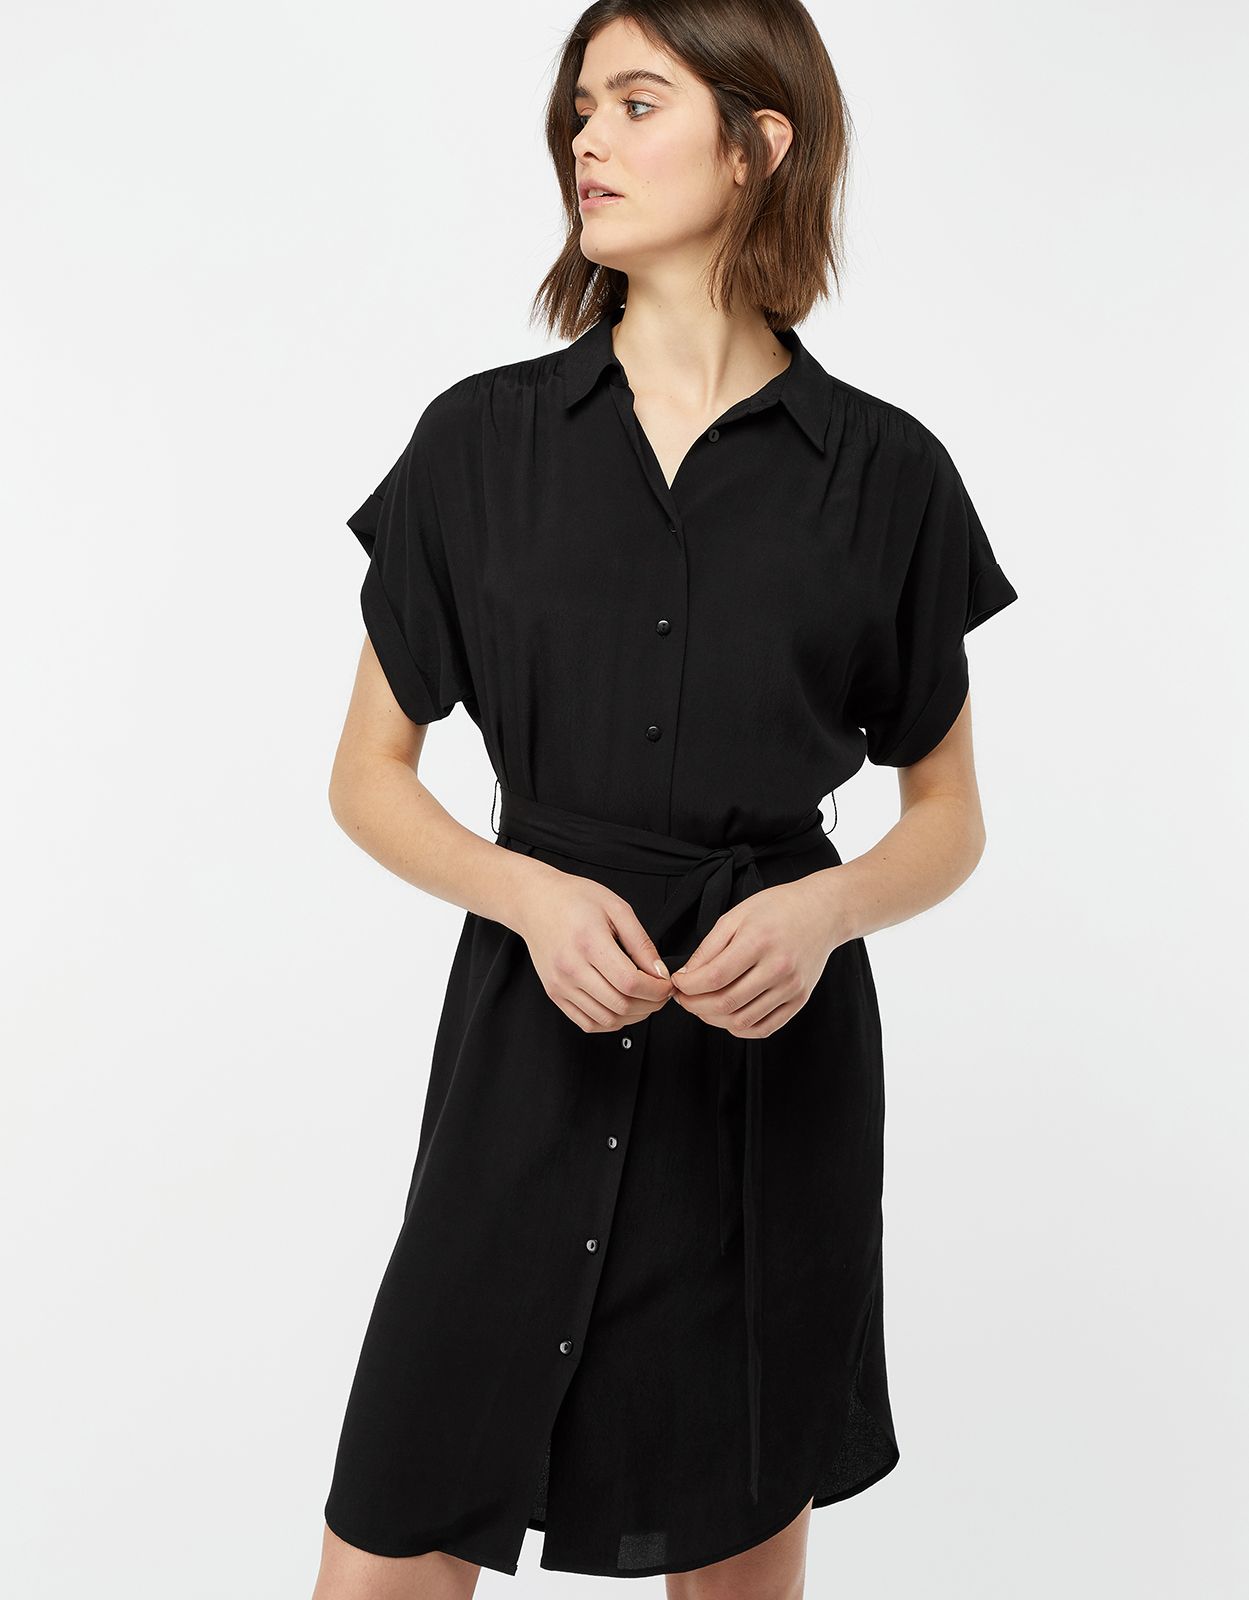 Monsoon Denny Plain Dress